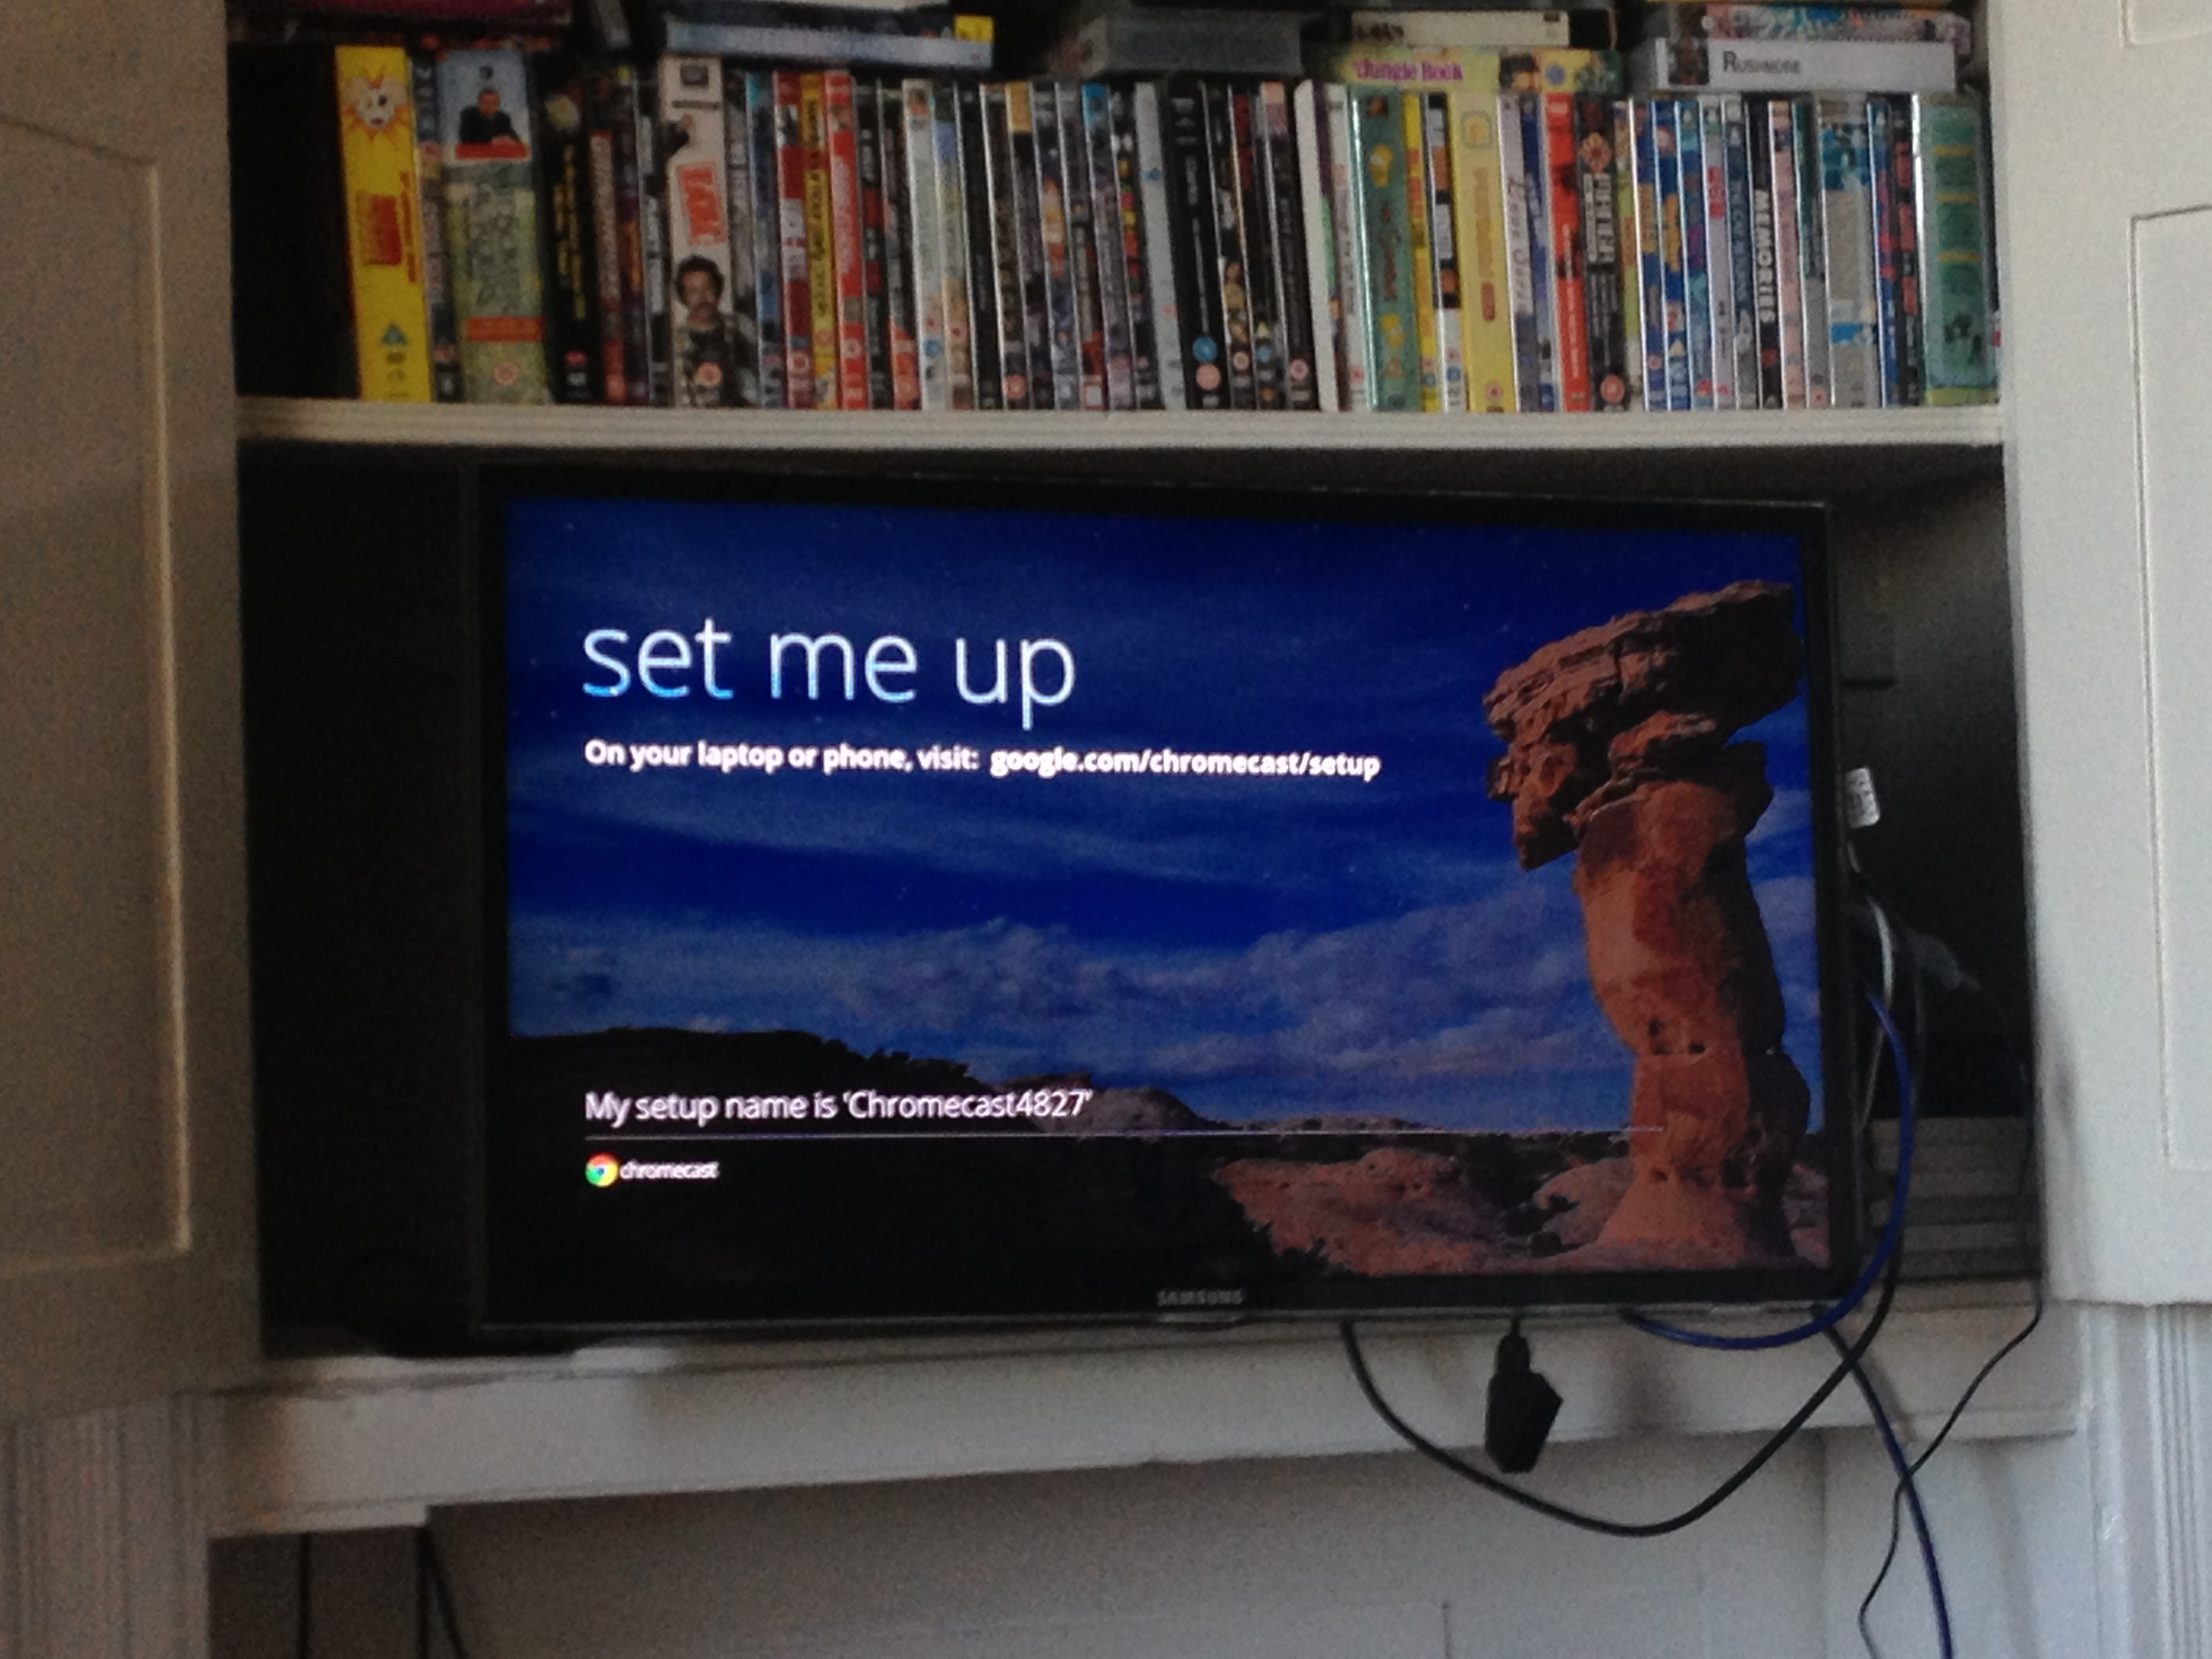 google chromecast setup instructions